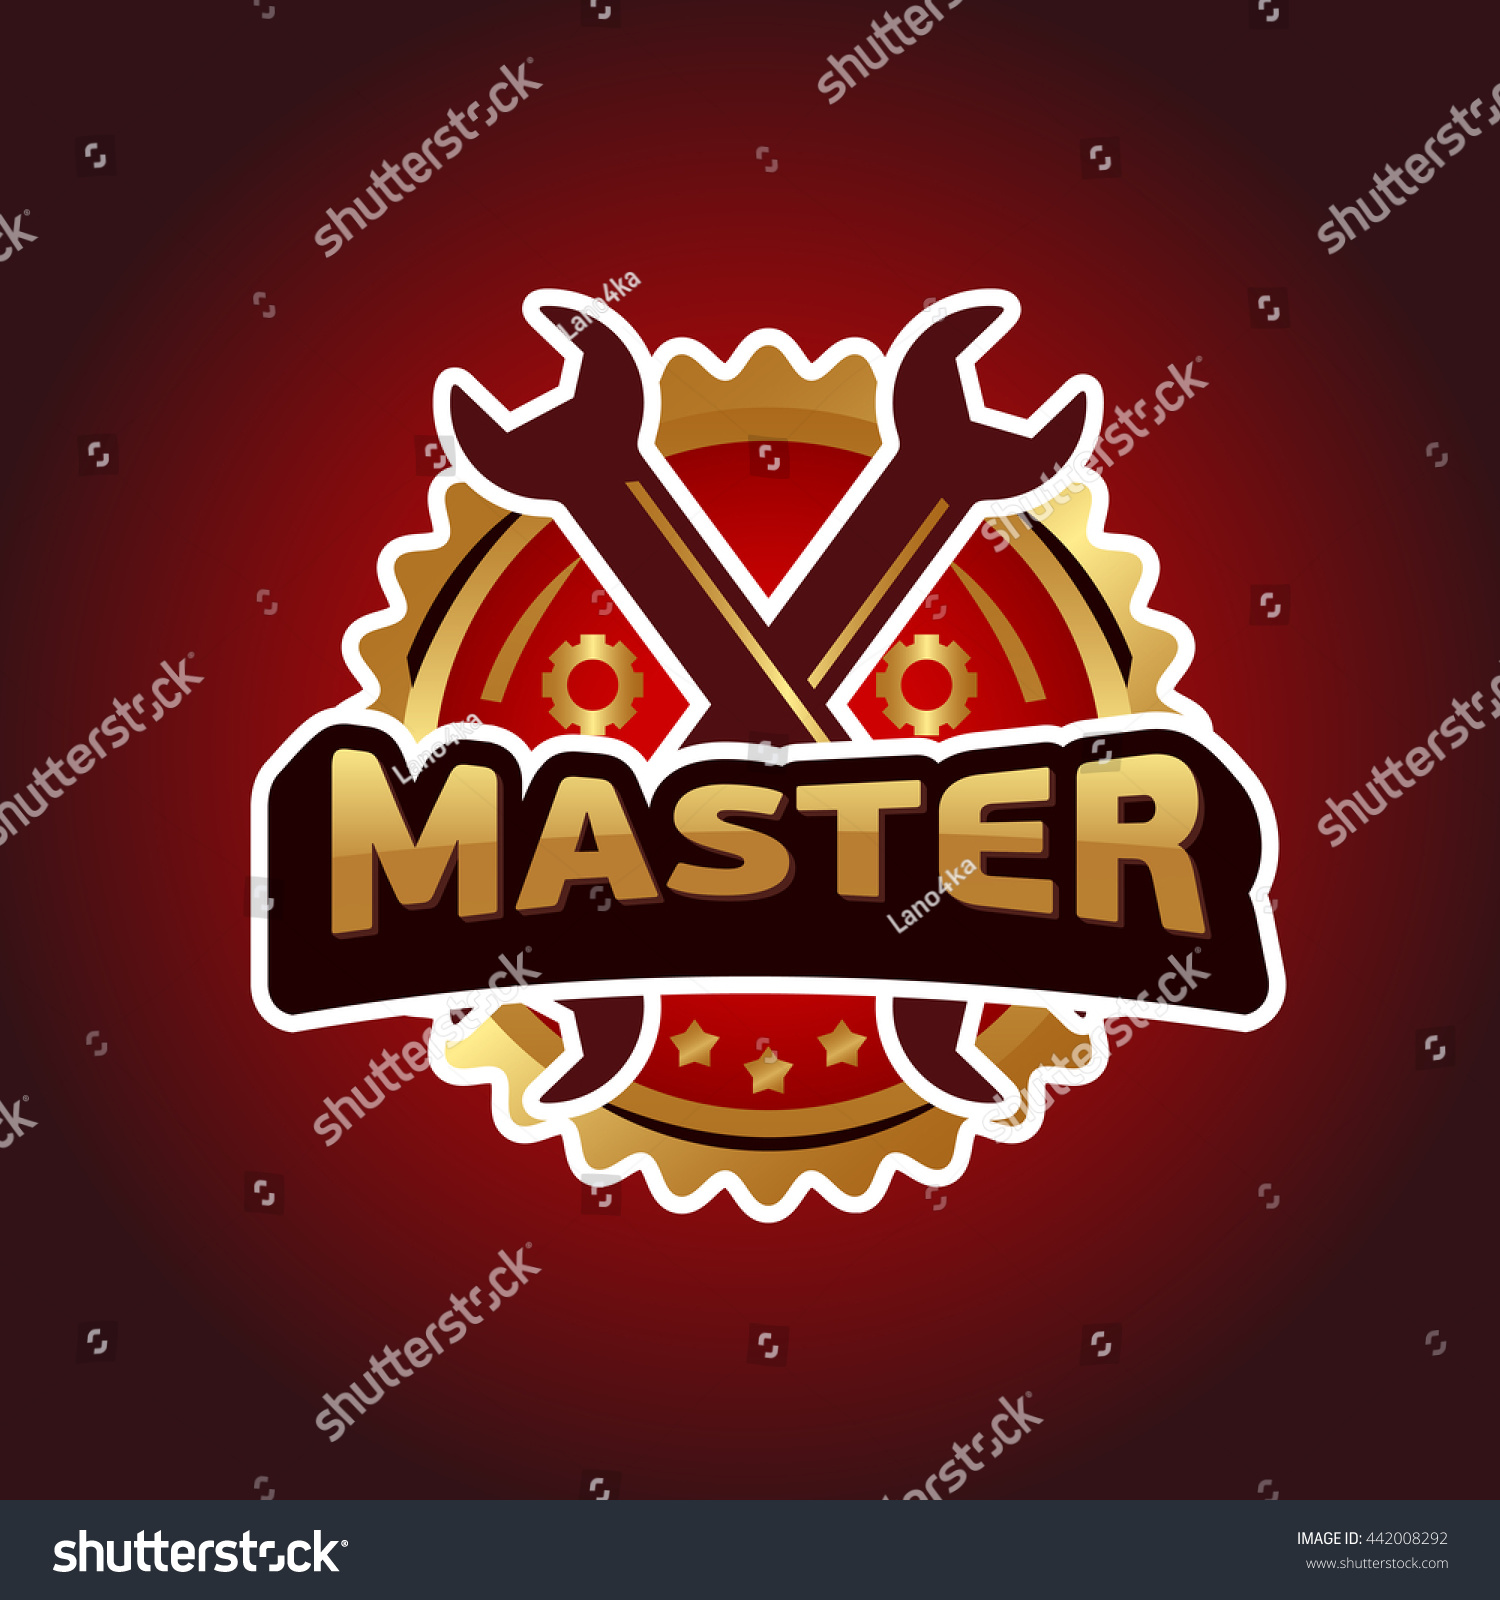 Logo master brand symbol service mark stock vector 442008292 logo master brand symbol service mark on a dark background vector illustration text master biocorpaavc Image collections